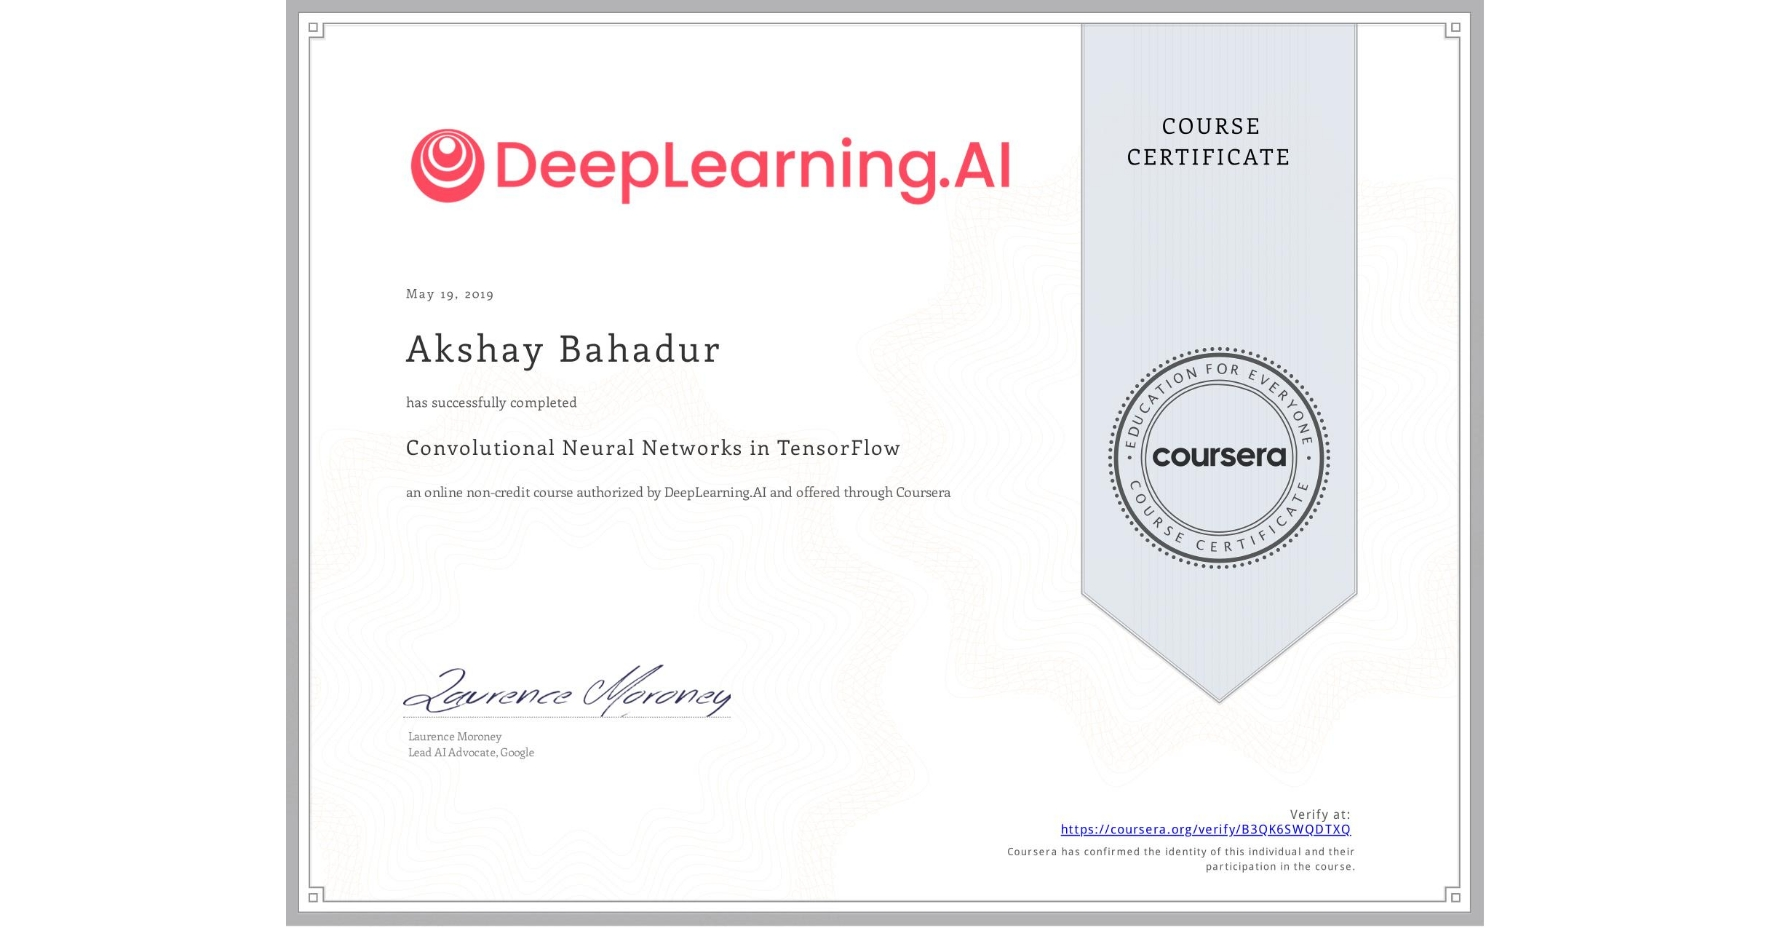 View certificate for Akshay Bahadur, Convolutional Neural Networks in TensorFlow, an online non-credit course authorized by DeepLearning.AI and offered through Coursera